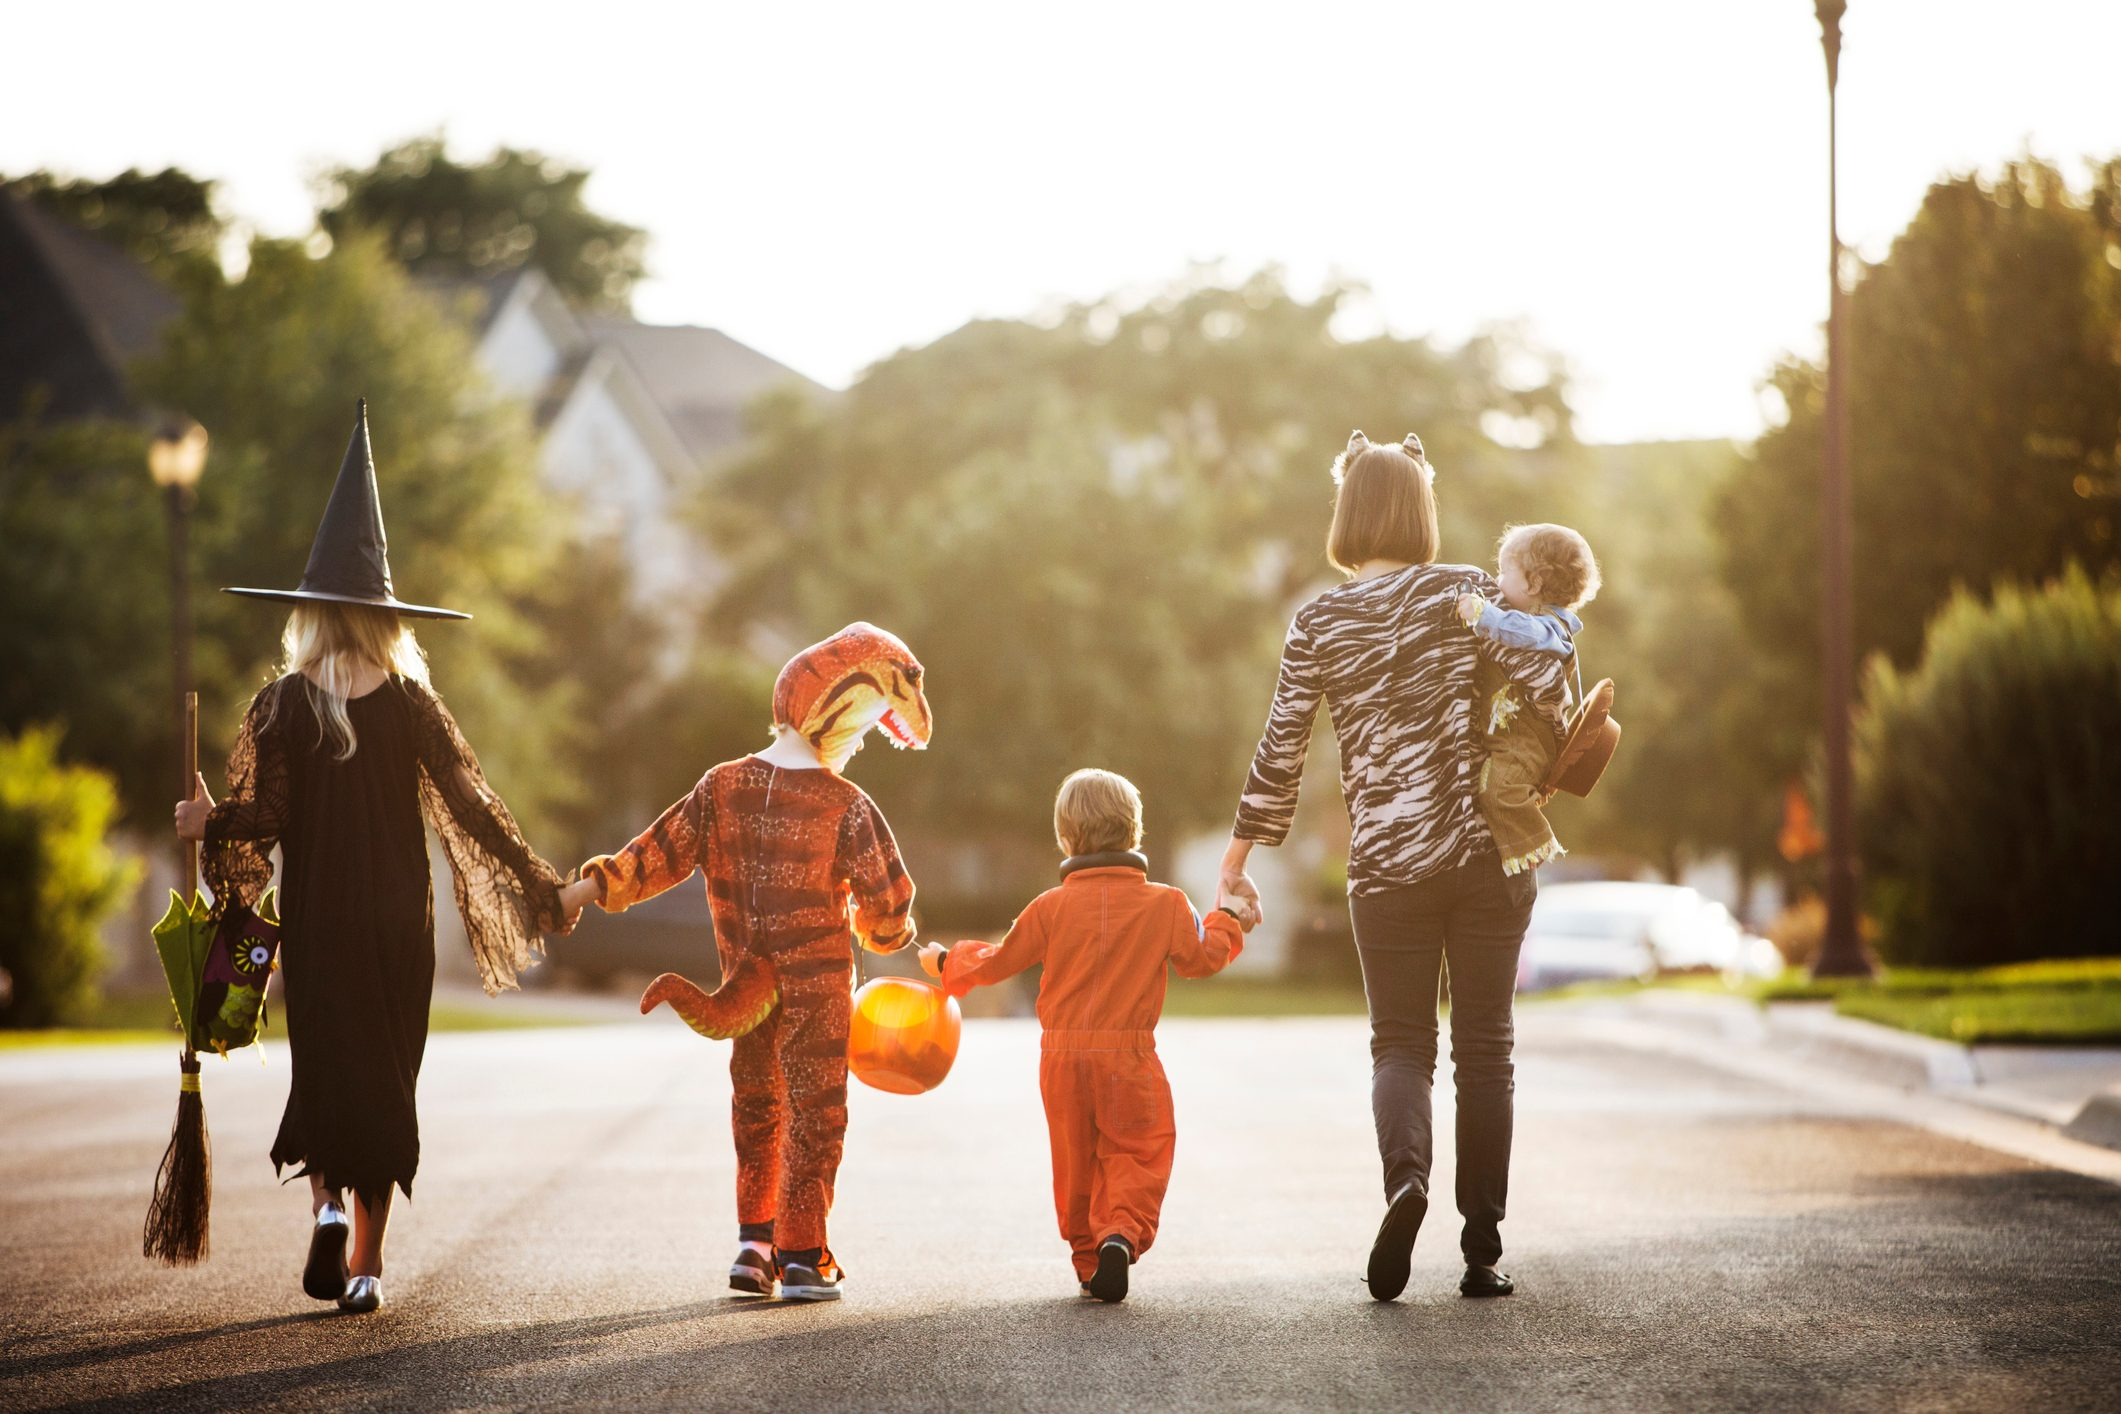 Rear view of women with children dressed for Halloween party walking on street